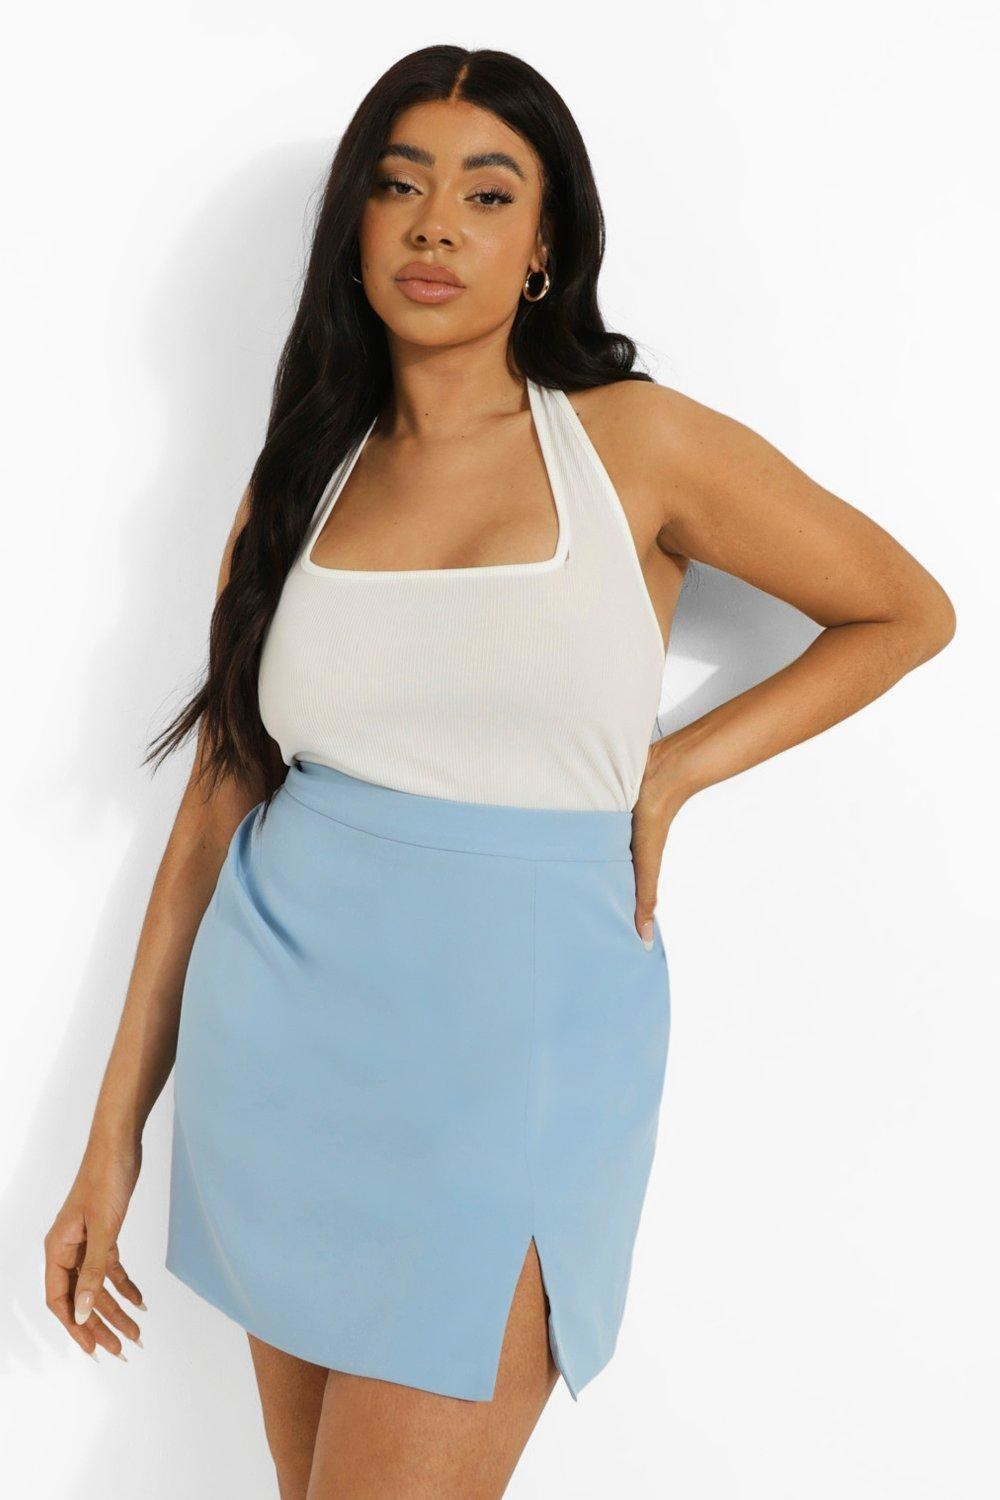 a model wearing the blue skirt with a small slit in the leg with a white top